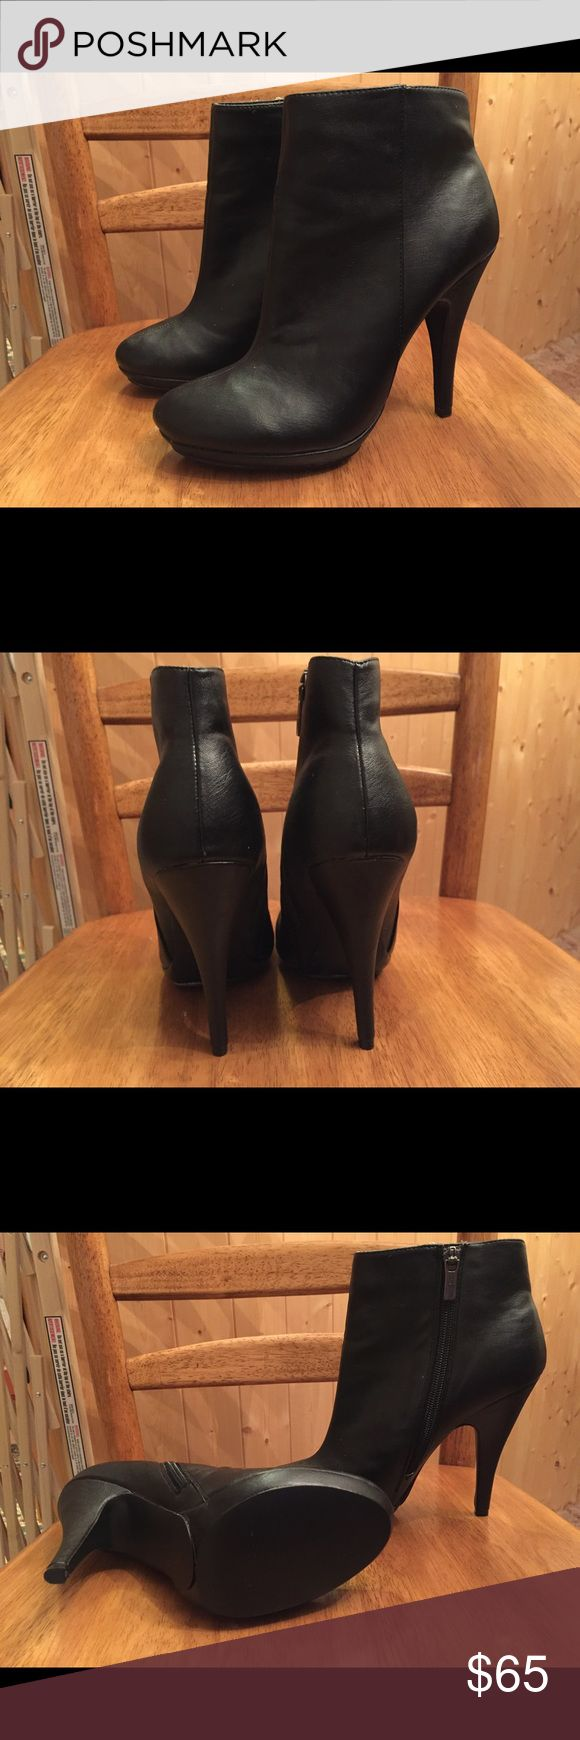 Colin Stuart booties Leather booties size 8 never worn. No stains,marks or odors. Reasonable offers. No trades. Shoes Ankle Boots & Booties